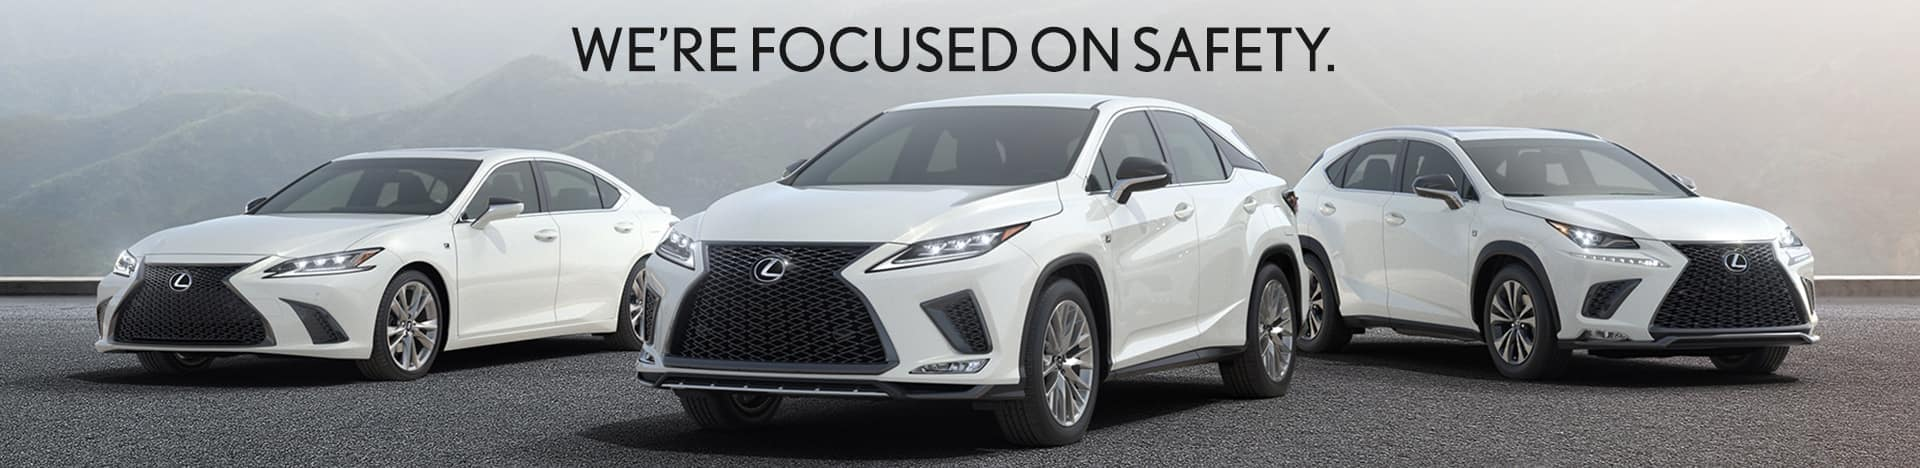 We're focused on Safety at Thompson Lexus in Doylestown, PA.